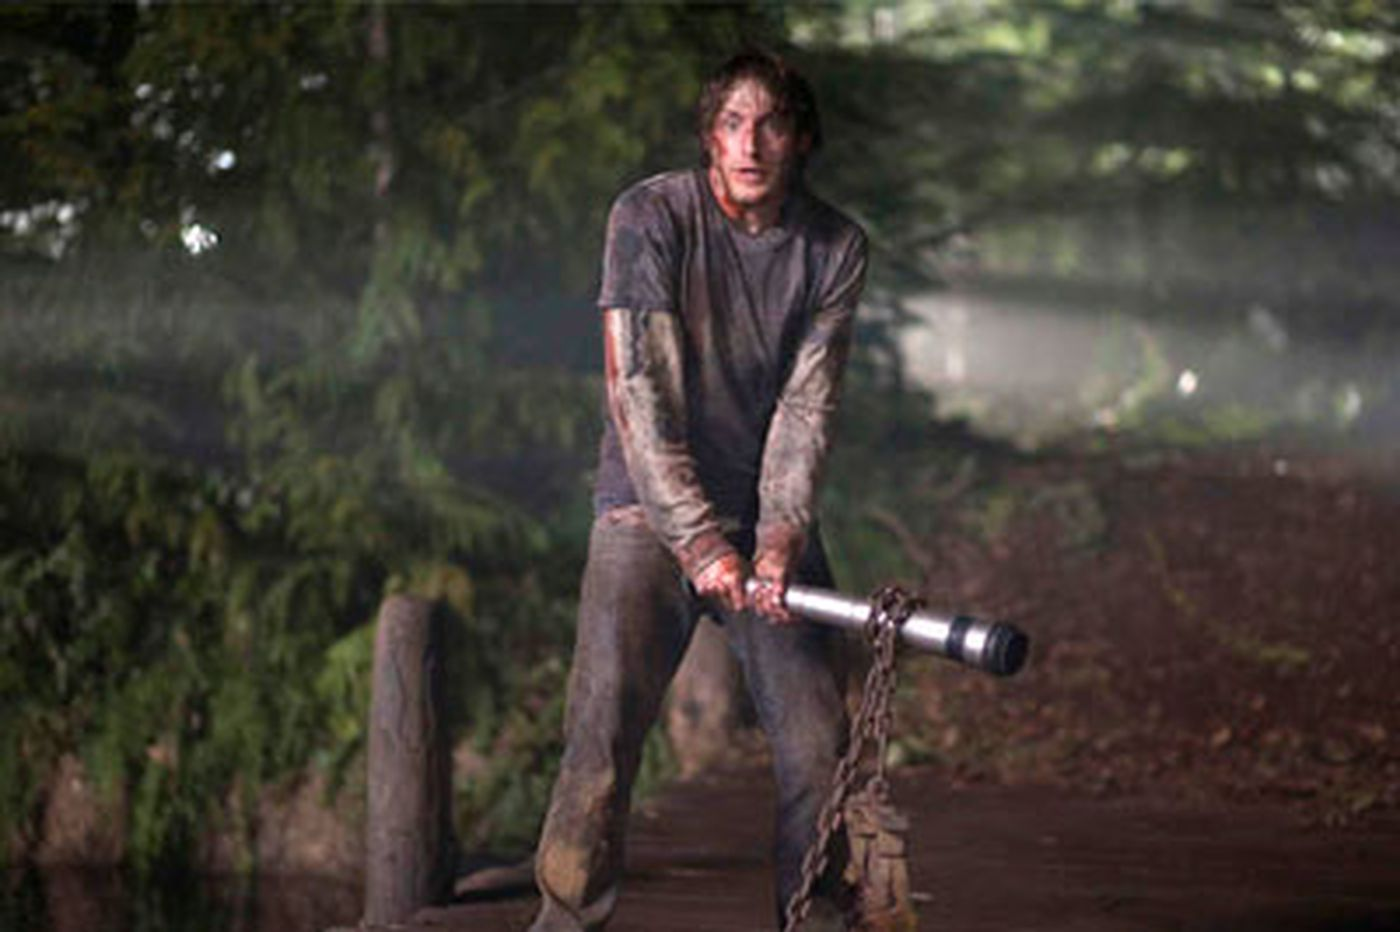 'The Cabin in the Woods' may be a career-maker for Fran Kranz